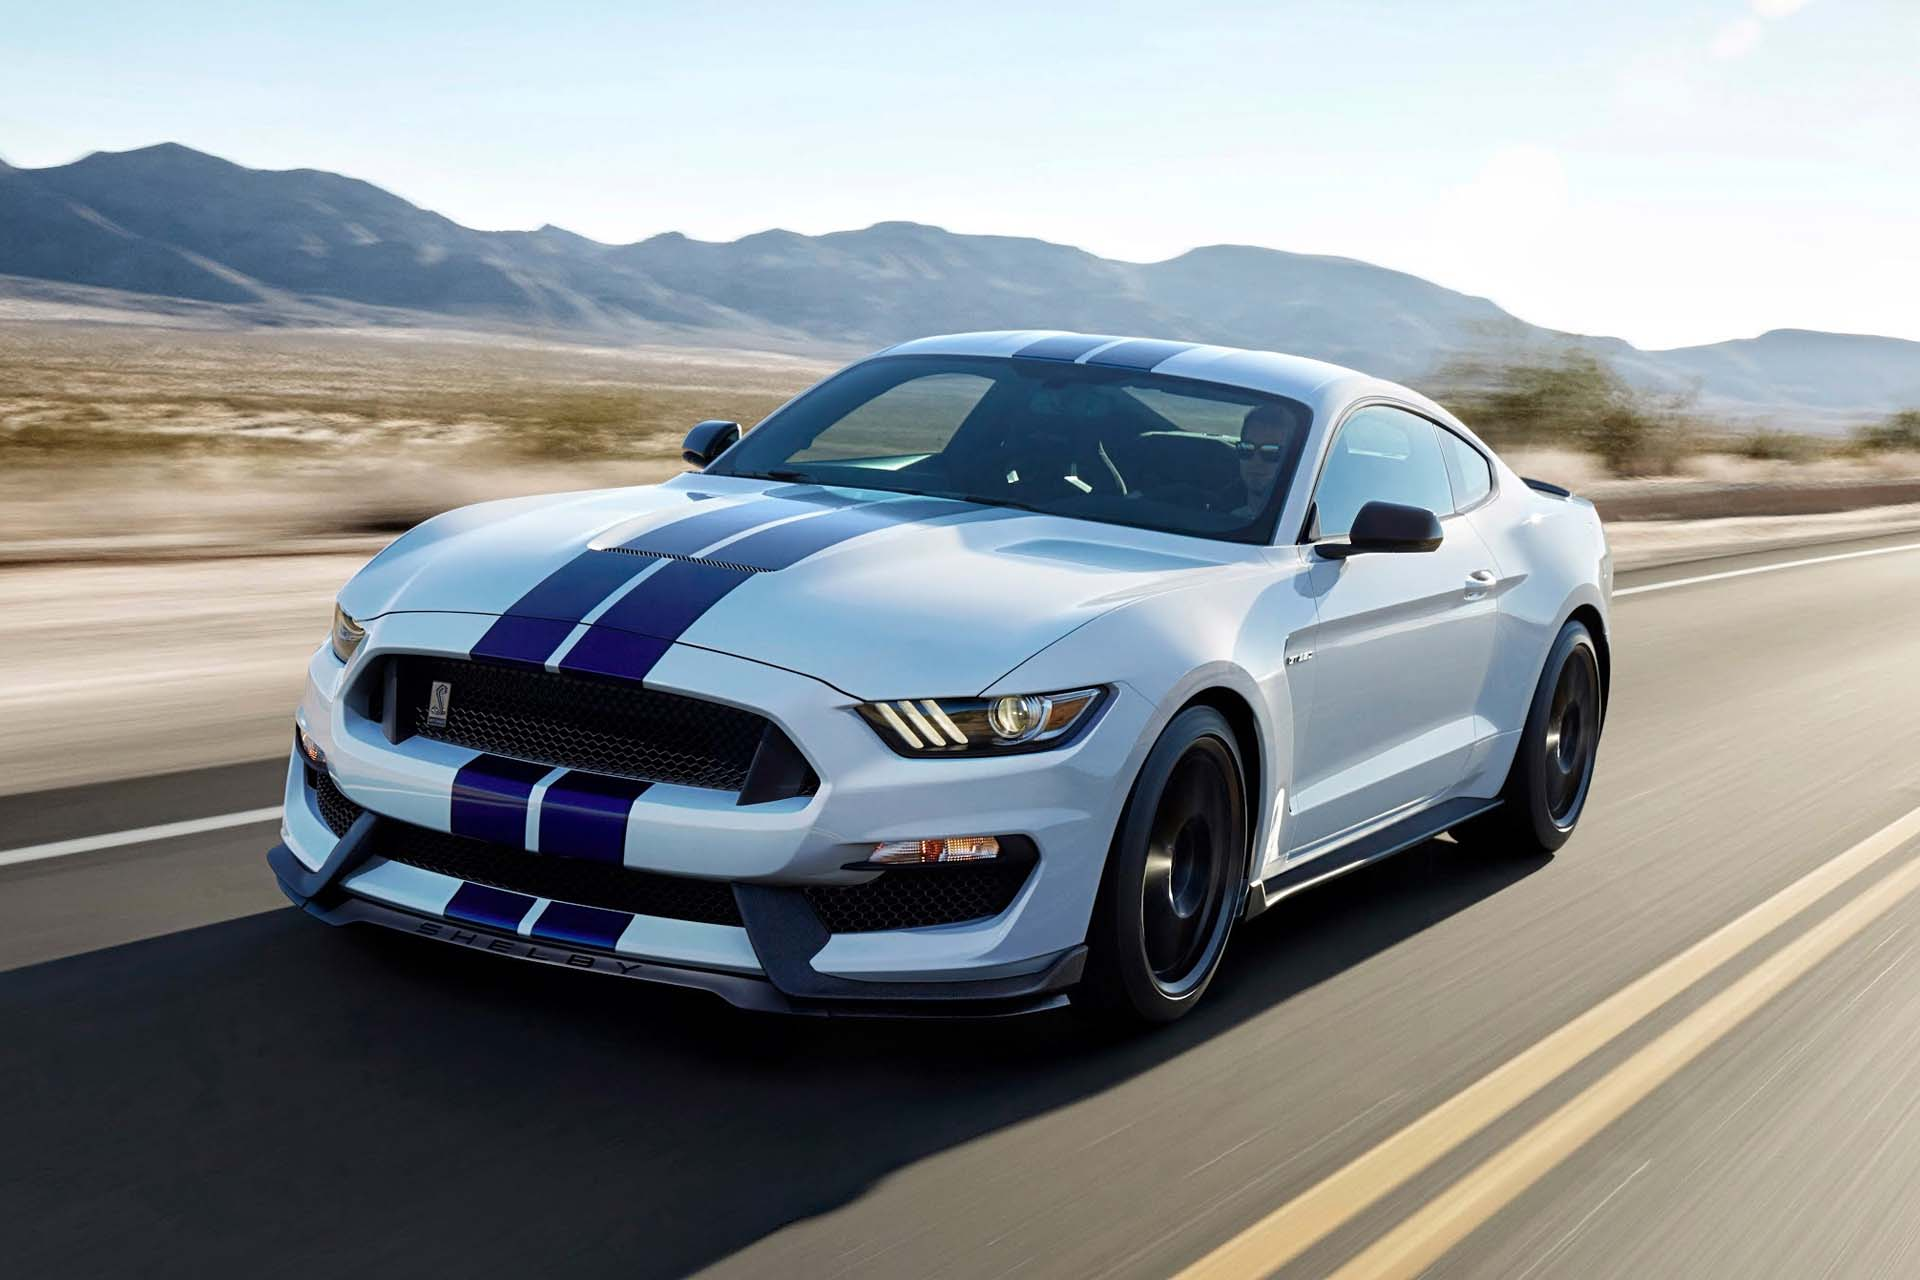 """Currently Ford's high horse is the GT350, any mention of which must legally include the phrase """"flat-plane crank."""" Basically, this thing's got muscle-car displacement with an engine design more commonly seen in Ferraris. Geez, that's really got to tick off Enzo. Expect the GT350 (and its racing version, the GT350R) to start showing up at racetracks soon, proving that the Mustang still knows how to run."""